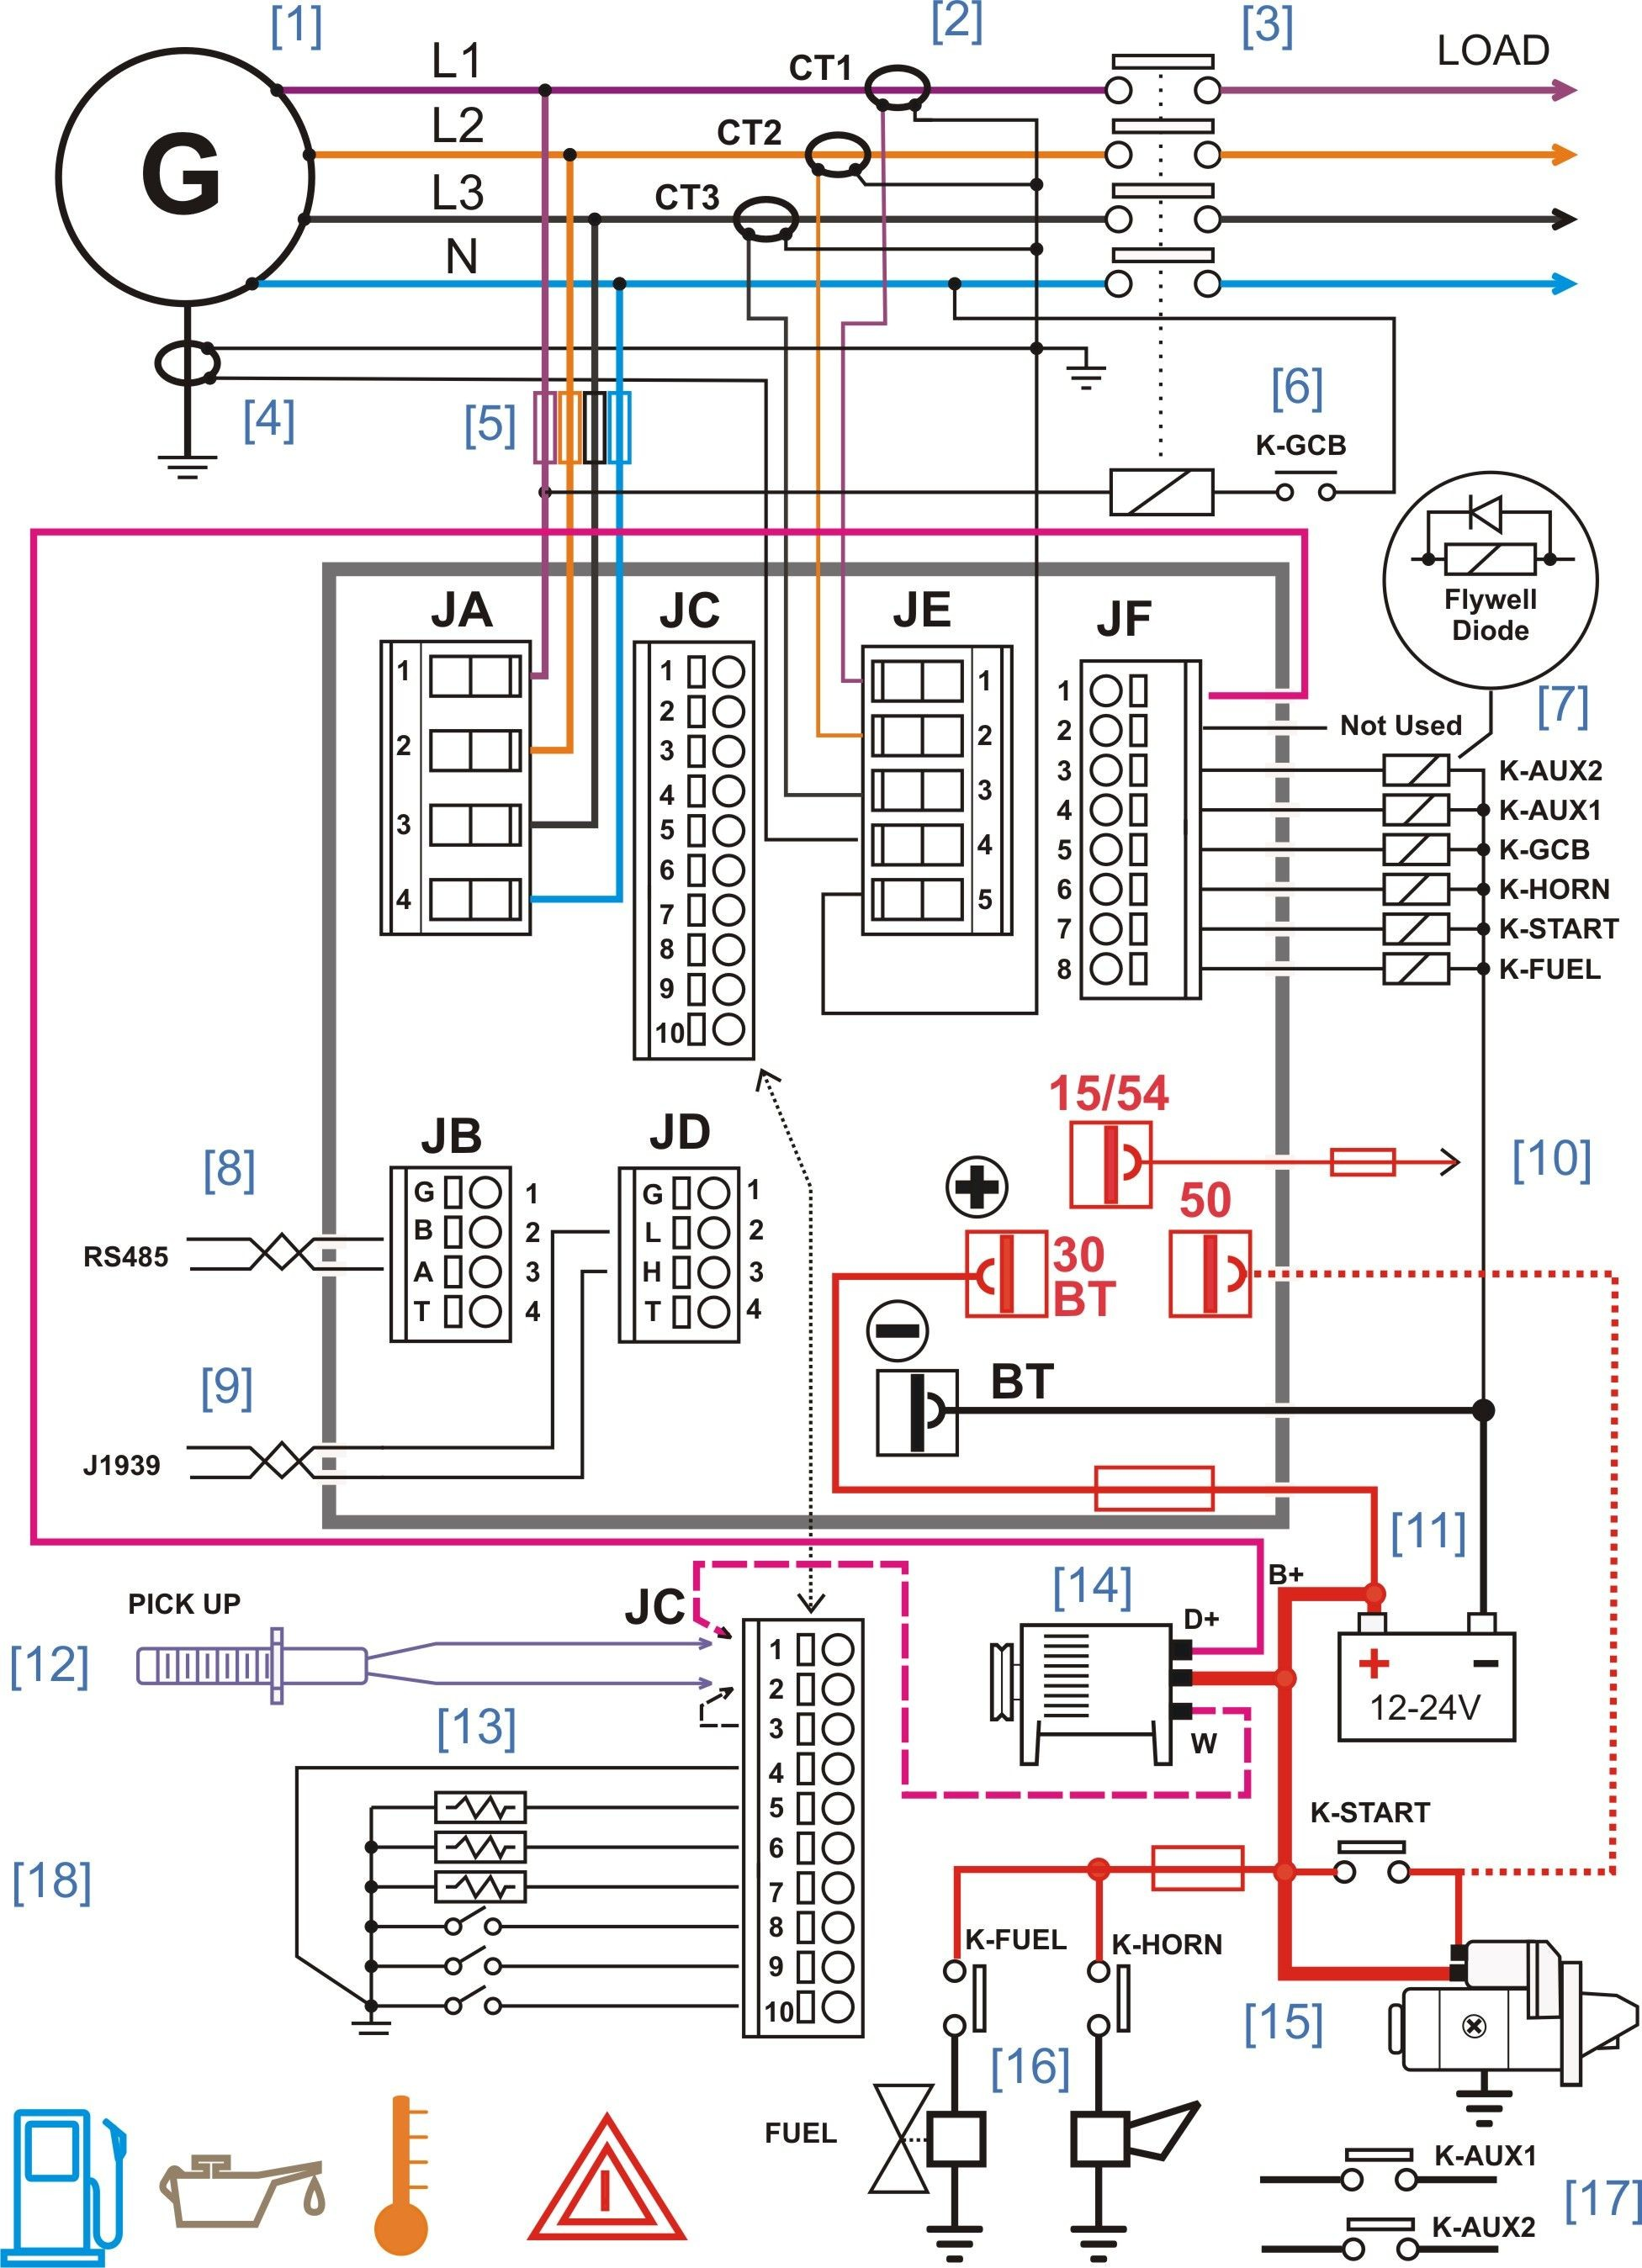 3 phase panel wiring diagram 4k wallpapers design sel generator control panel wiring diagram asfbconference2016 Gallery